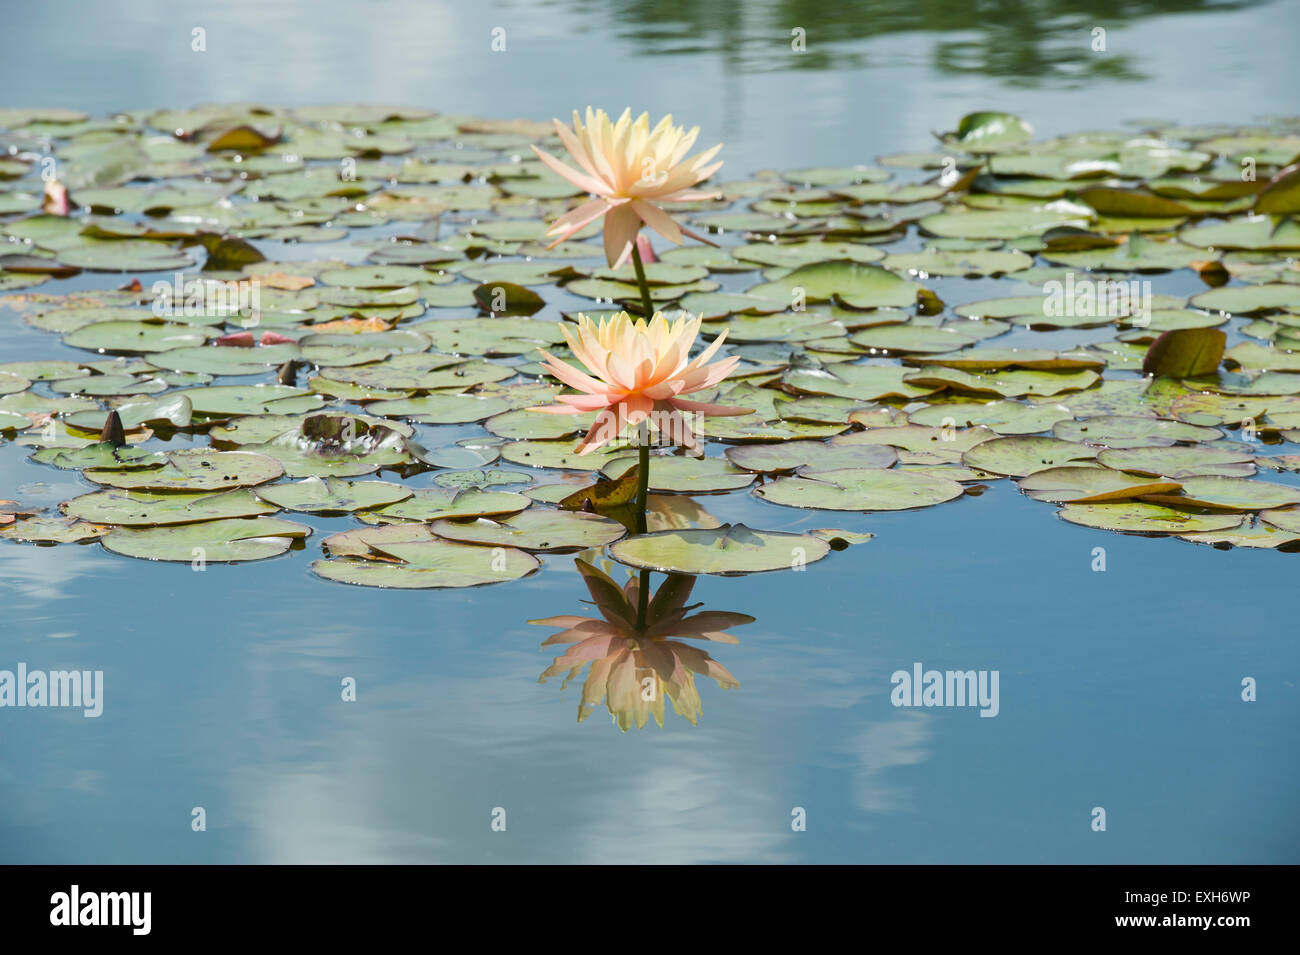 Nymphaea Maria. Hardy Water Lily in a pond with reflections - Stock Image